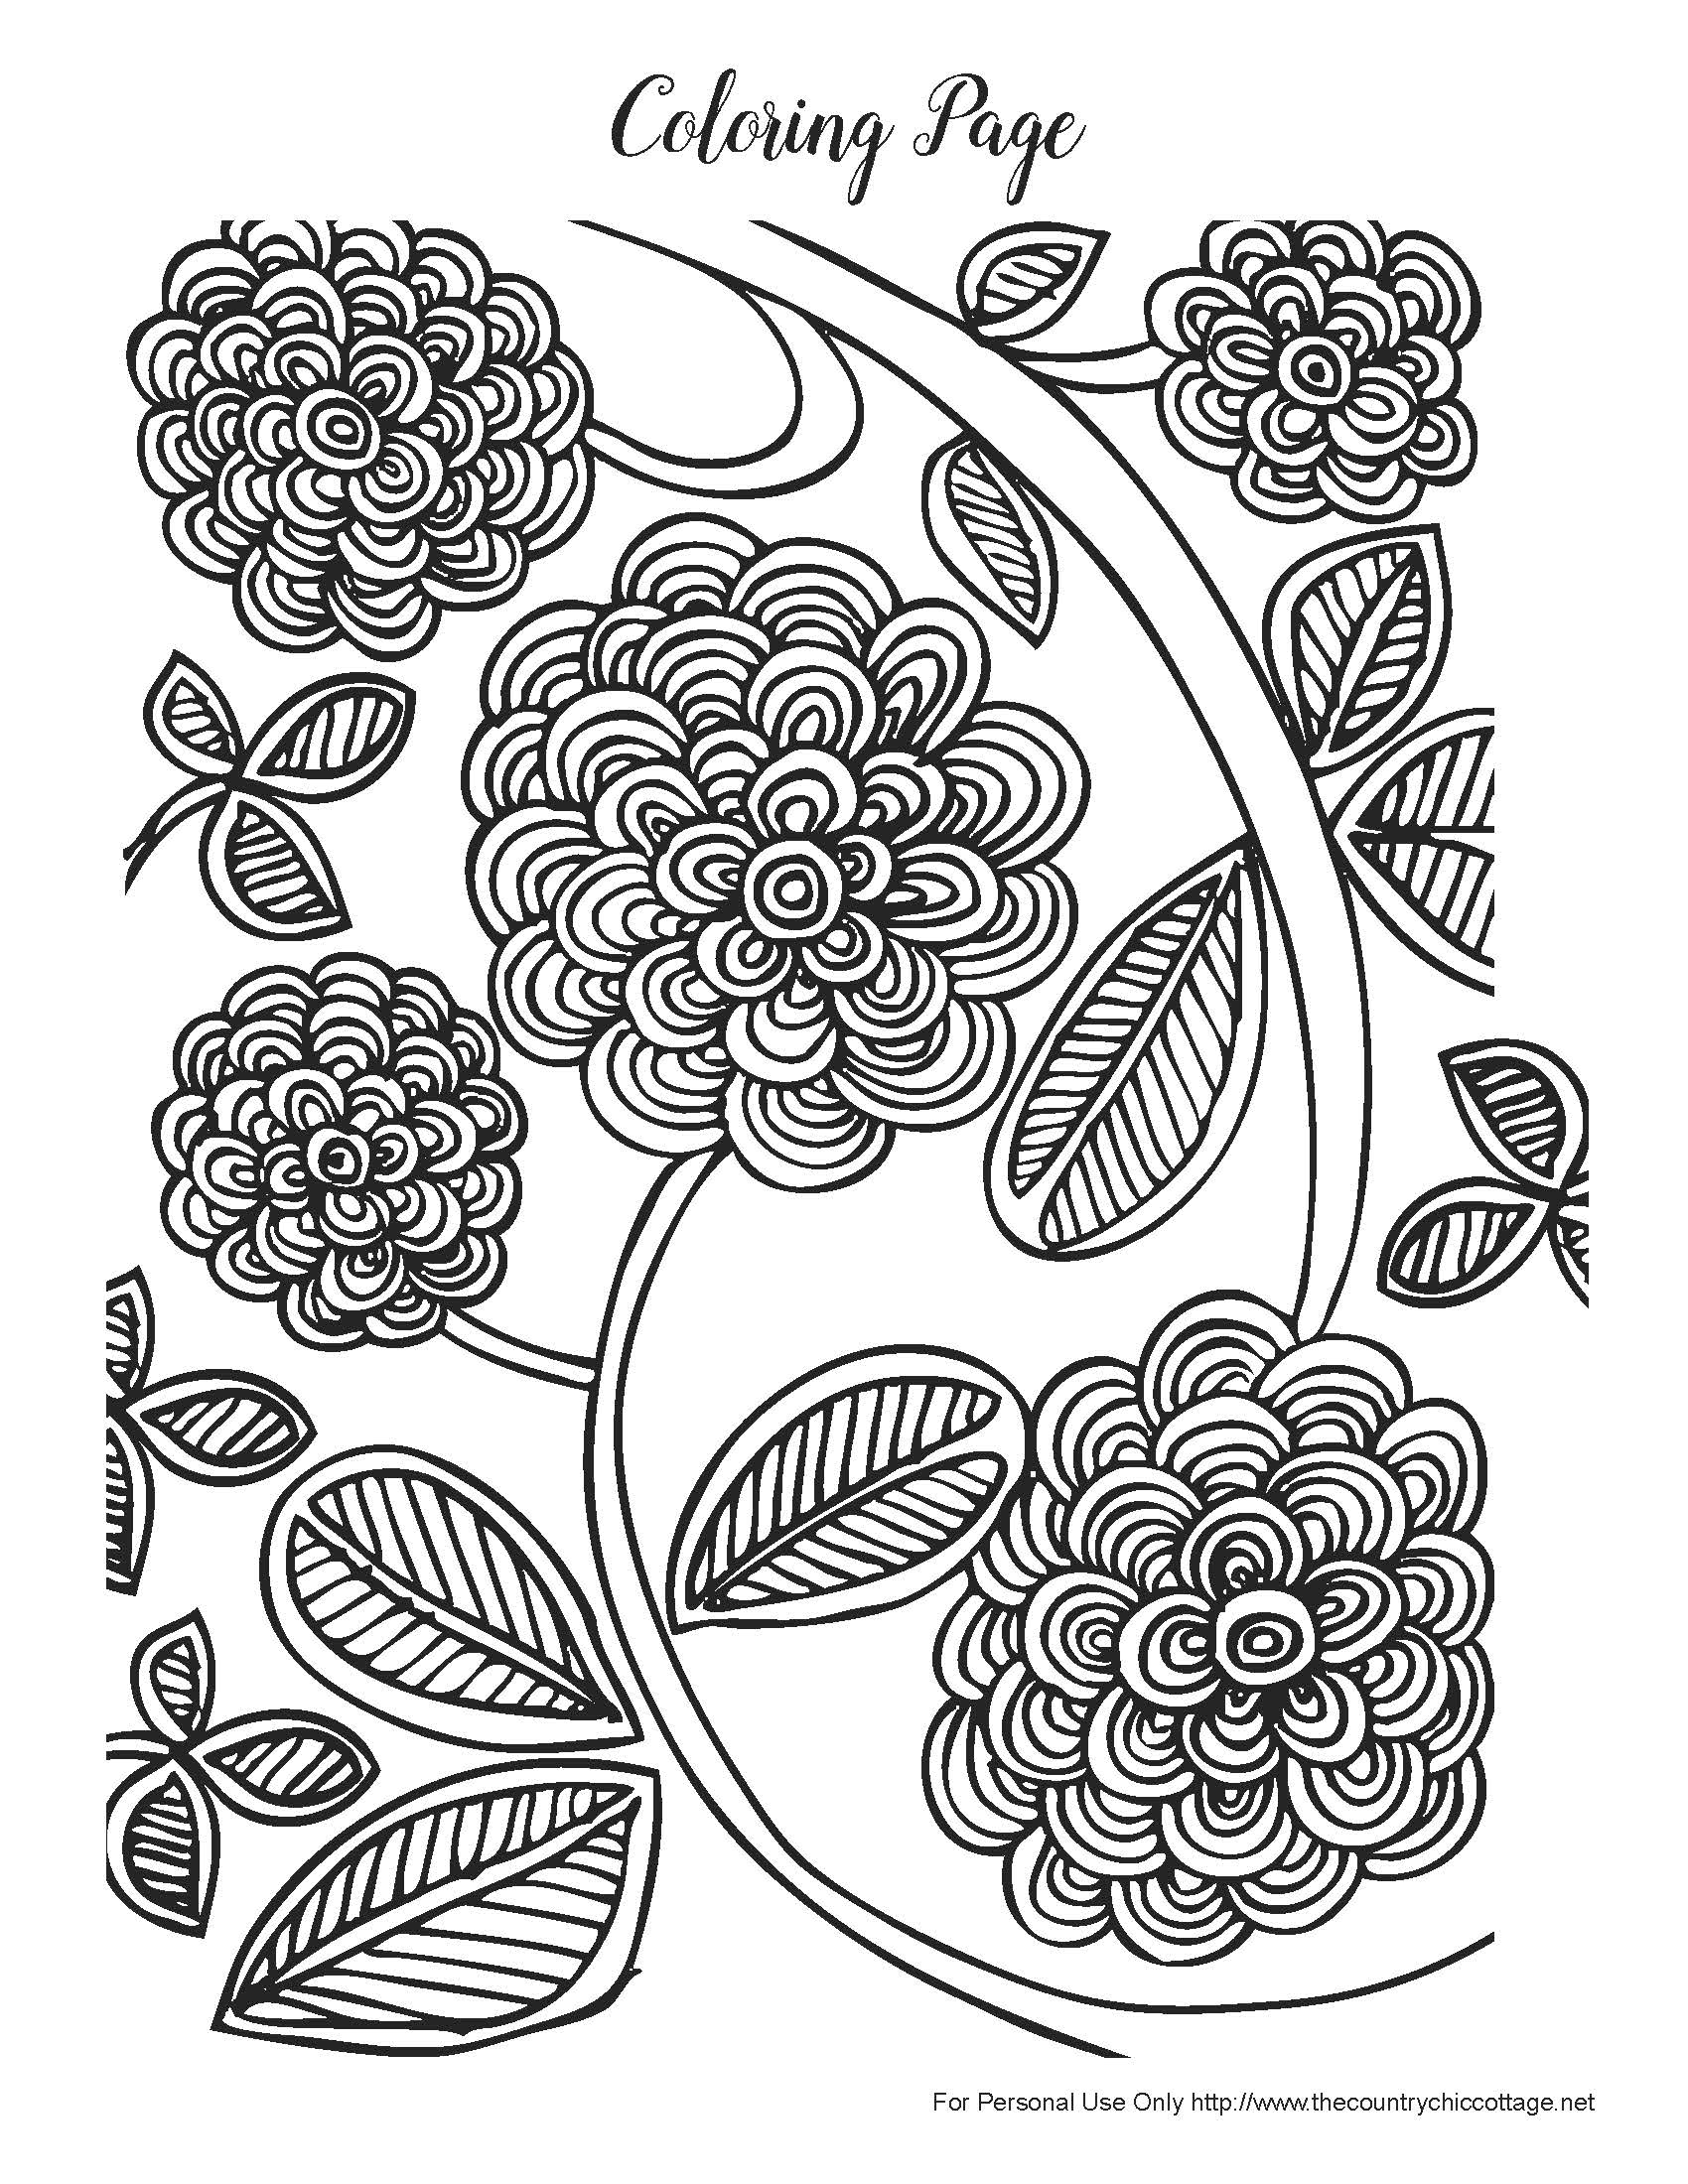 download these free spring coloring pages for adults today color pretty flowers with intricate designs - Download Coloring Pages For Adults